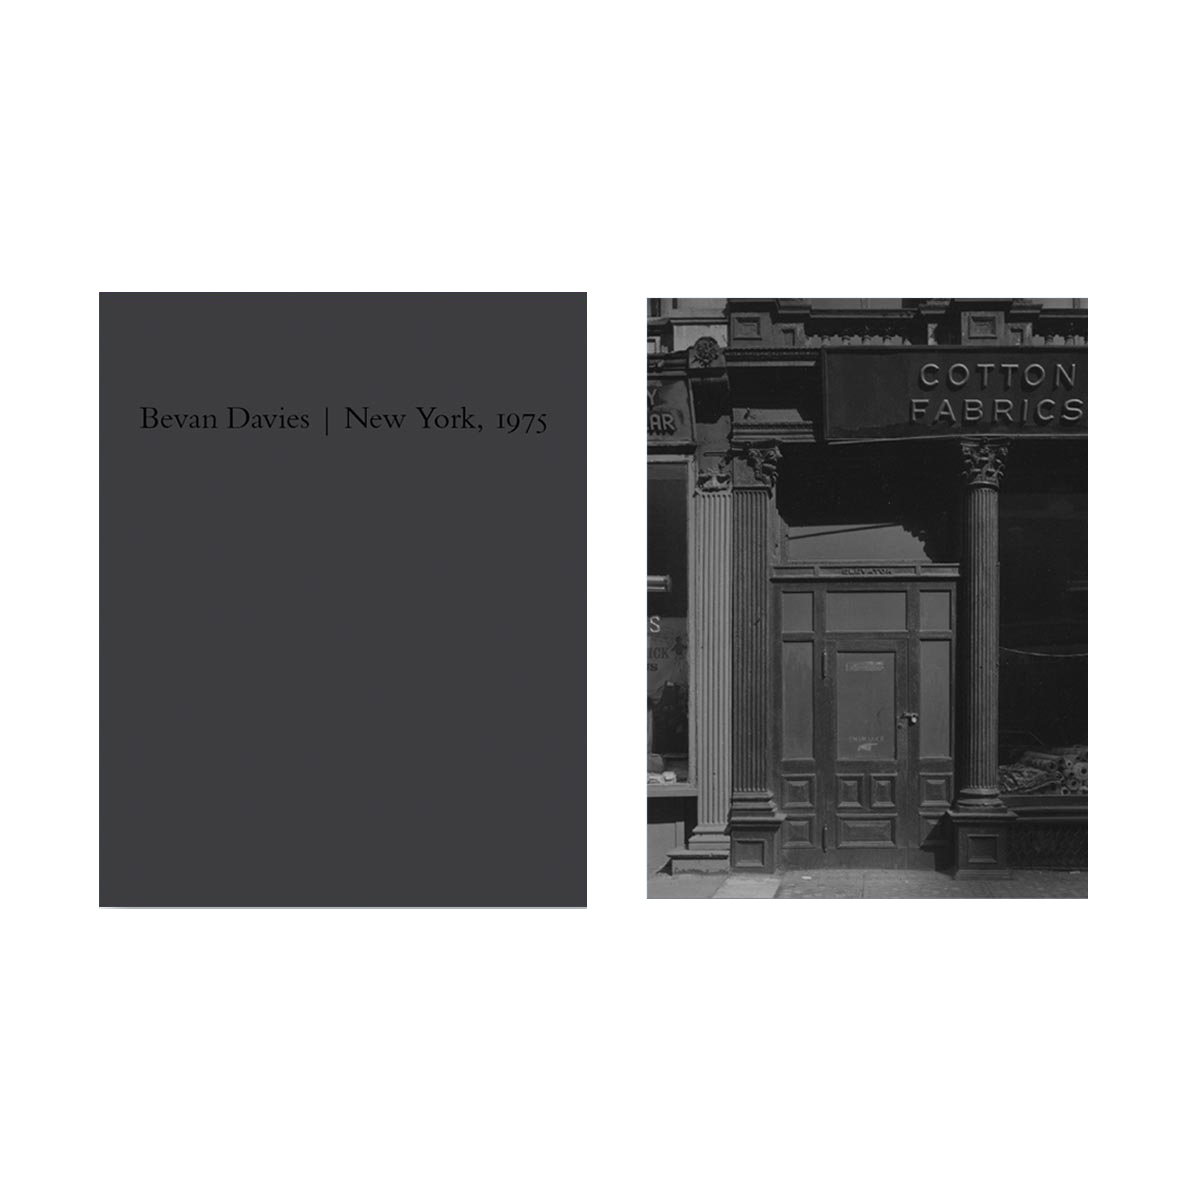 NZ Library #3: Bevan Davies: New York, 1975, Special Limited Edition (with Print) (NZ Library - Set Three) [SIGNED]